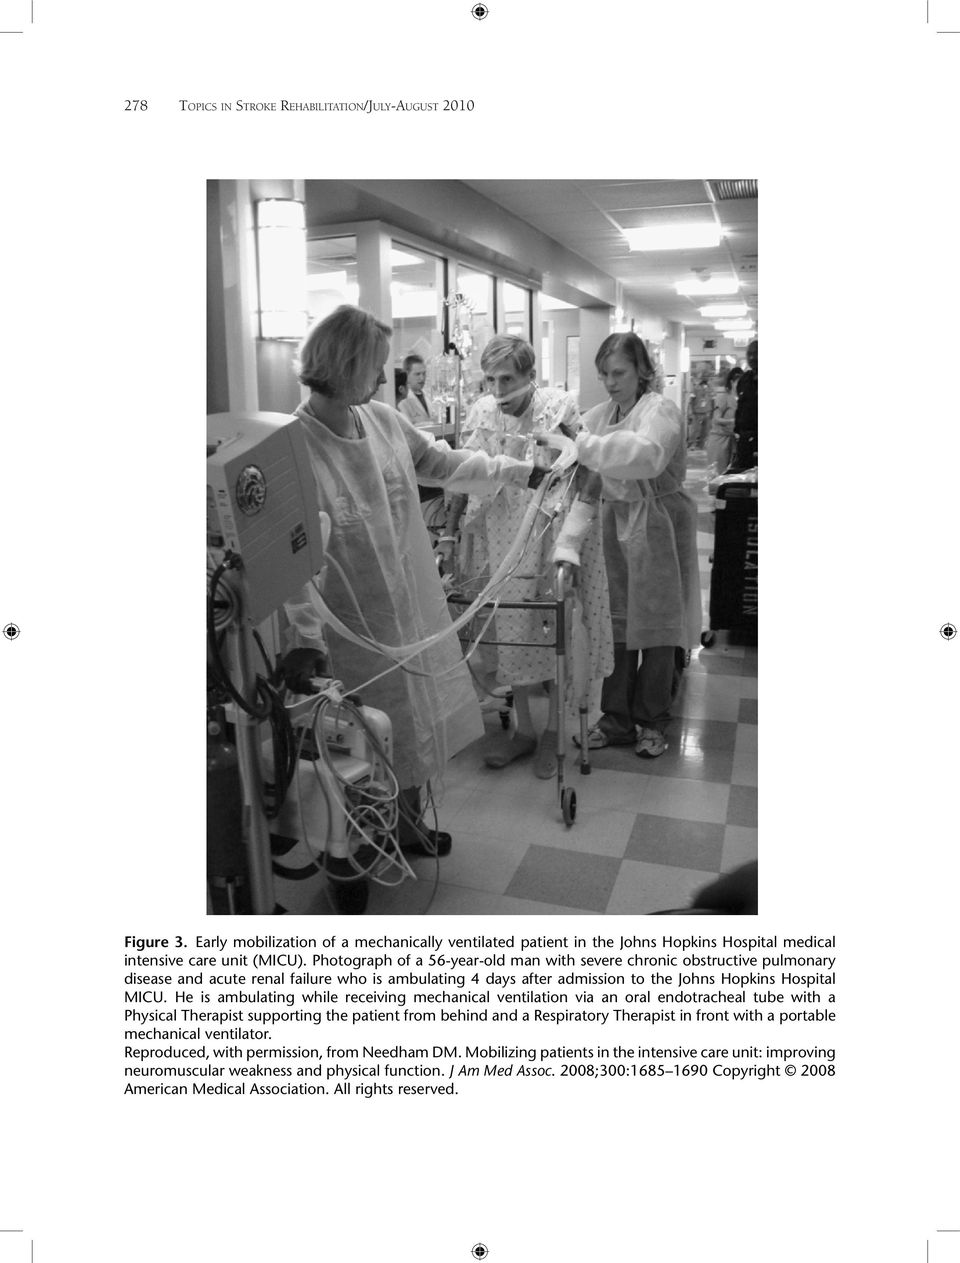 He is ambulating while receiving mechanical ventilation via an oral endotracheal tube with a Physical Therapist supporting the patient from behind and a Respiratory Therapist in front with a portable